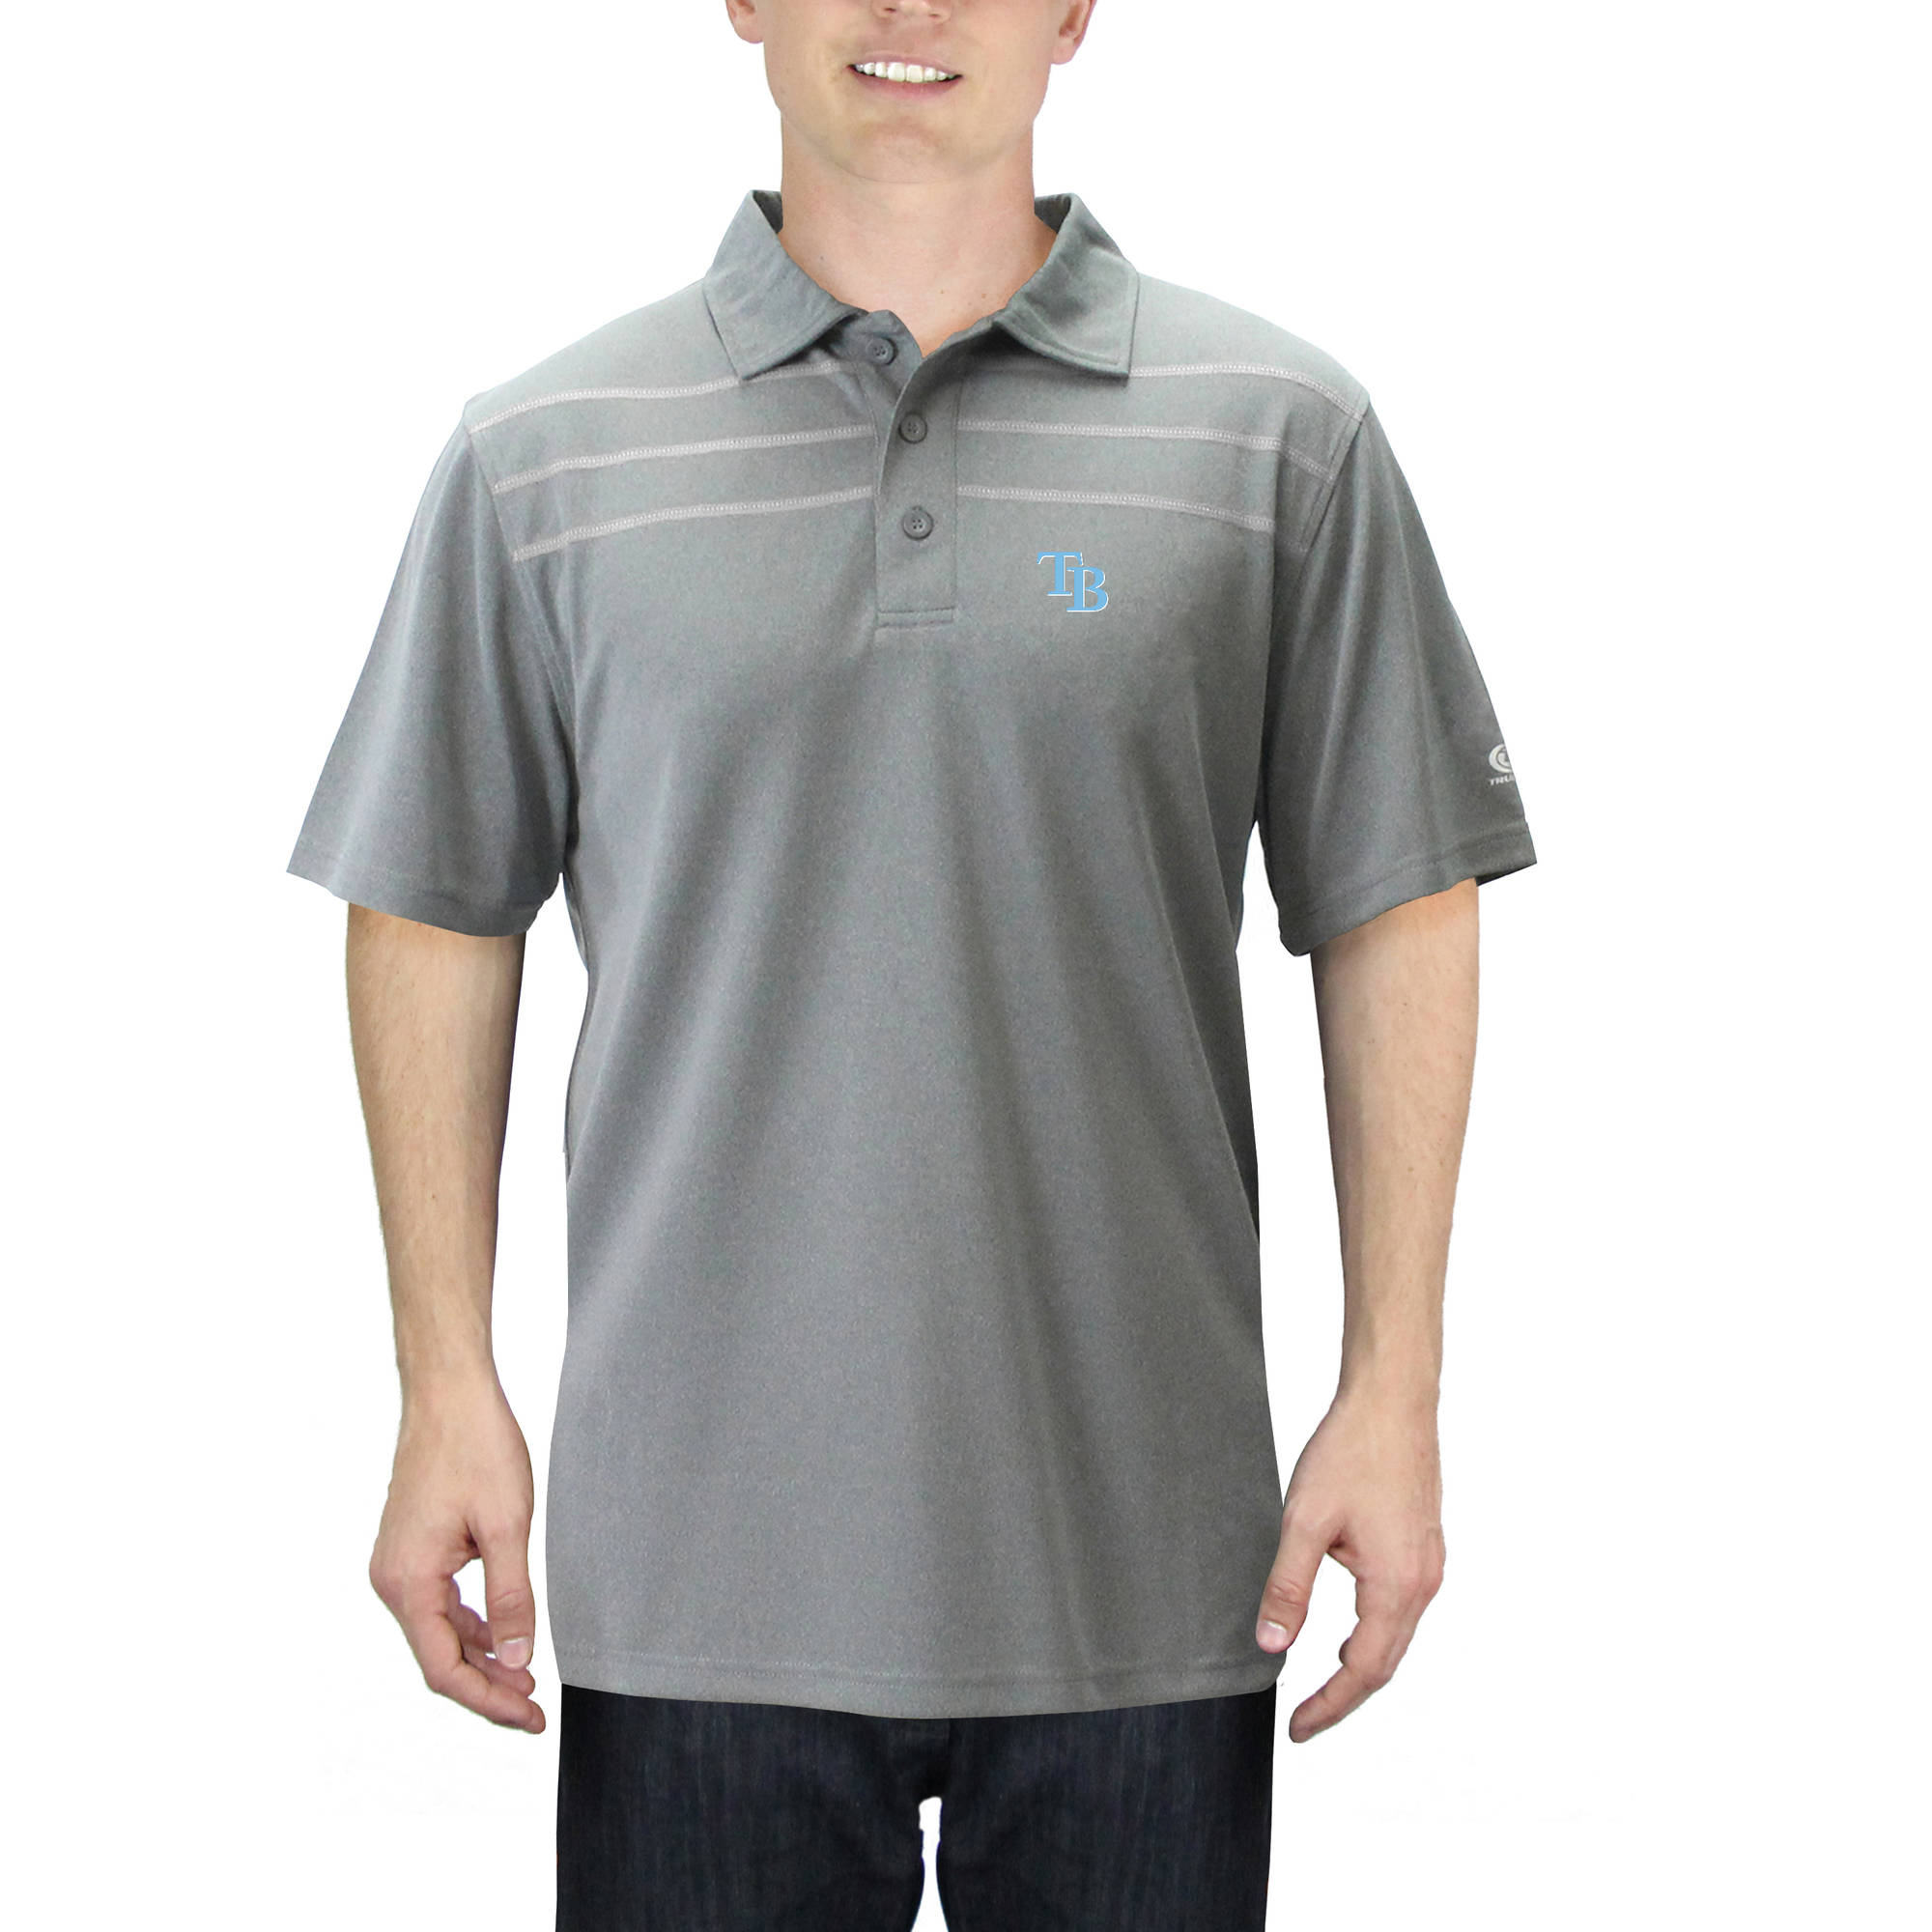 MLB Tampa Bay Rays Men's Mini Pique Short Sleeve Polo